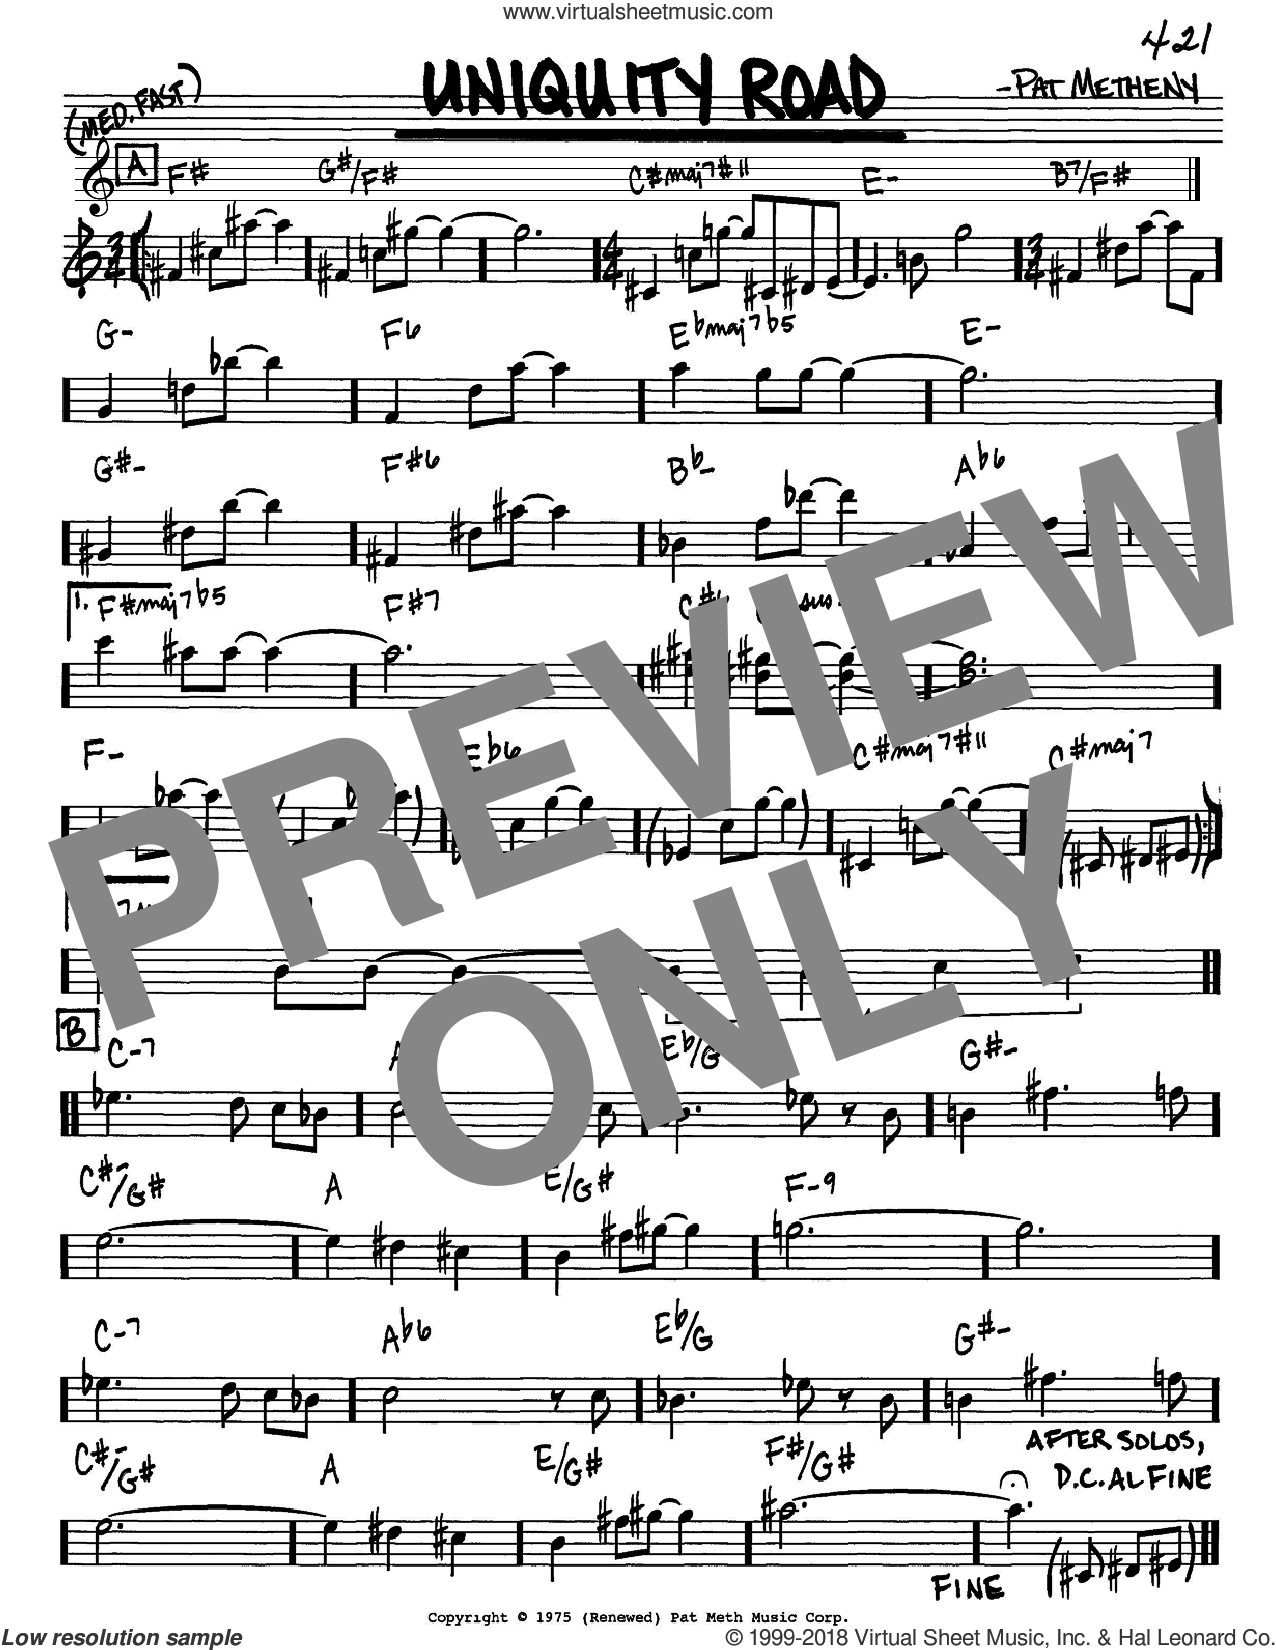 Uniquity Road sheet music for voice and other instruments (in Eb) by Pat Metheny, intermediate